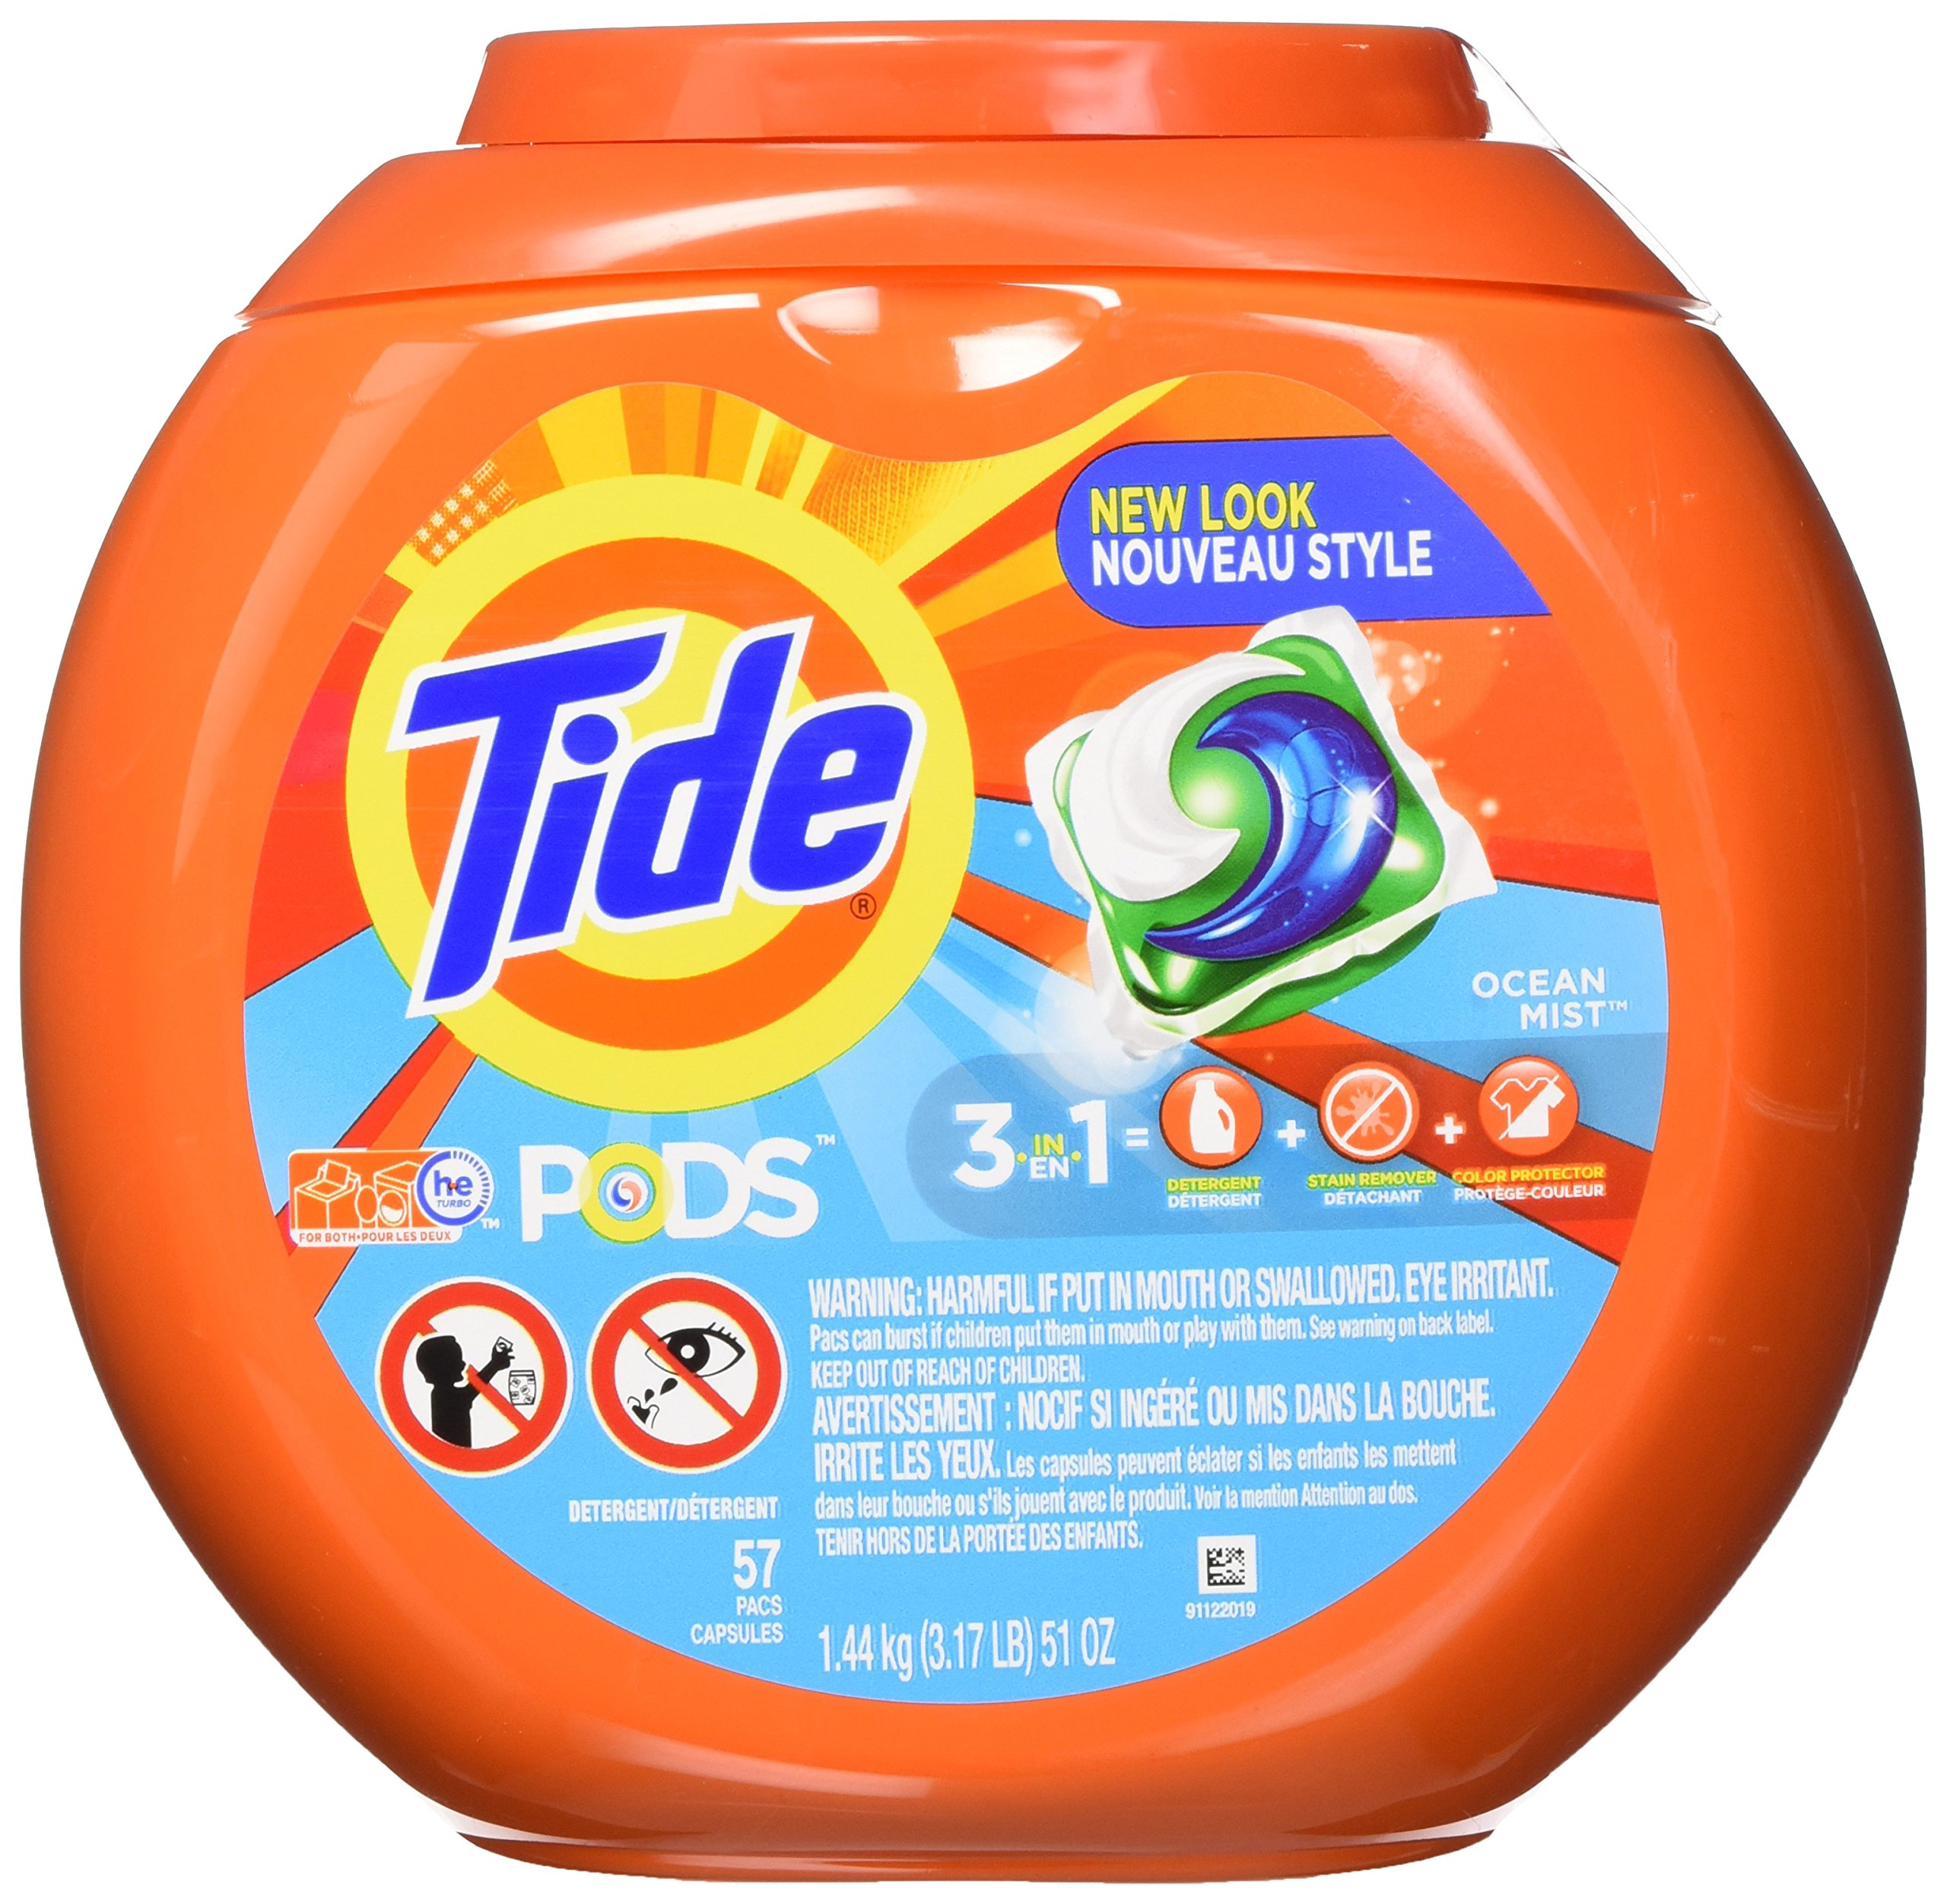 Nov 05,  · How to Use Tide Pods. In this Article: Article Summary Washing With Tide Pods Buying and Storing Tide Pods Avoiding Common Problems Community Q&A 10 References. Tide pods are dissolvable capsules containing the appropriate amount of Tide detergent, stain remover, and brightener for a load of laundry%(15).